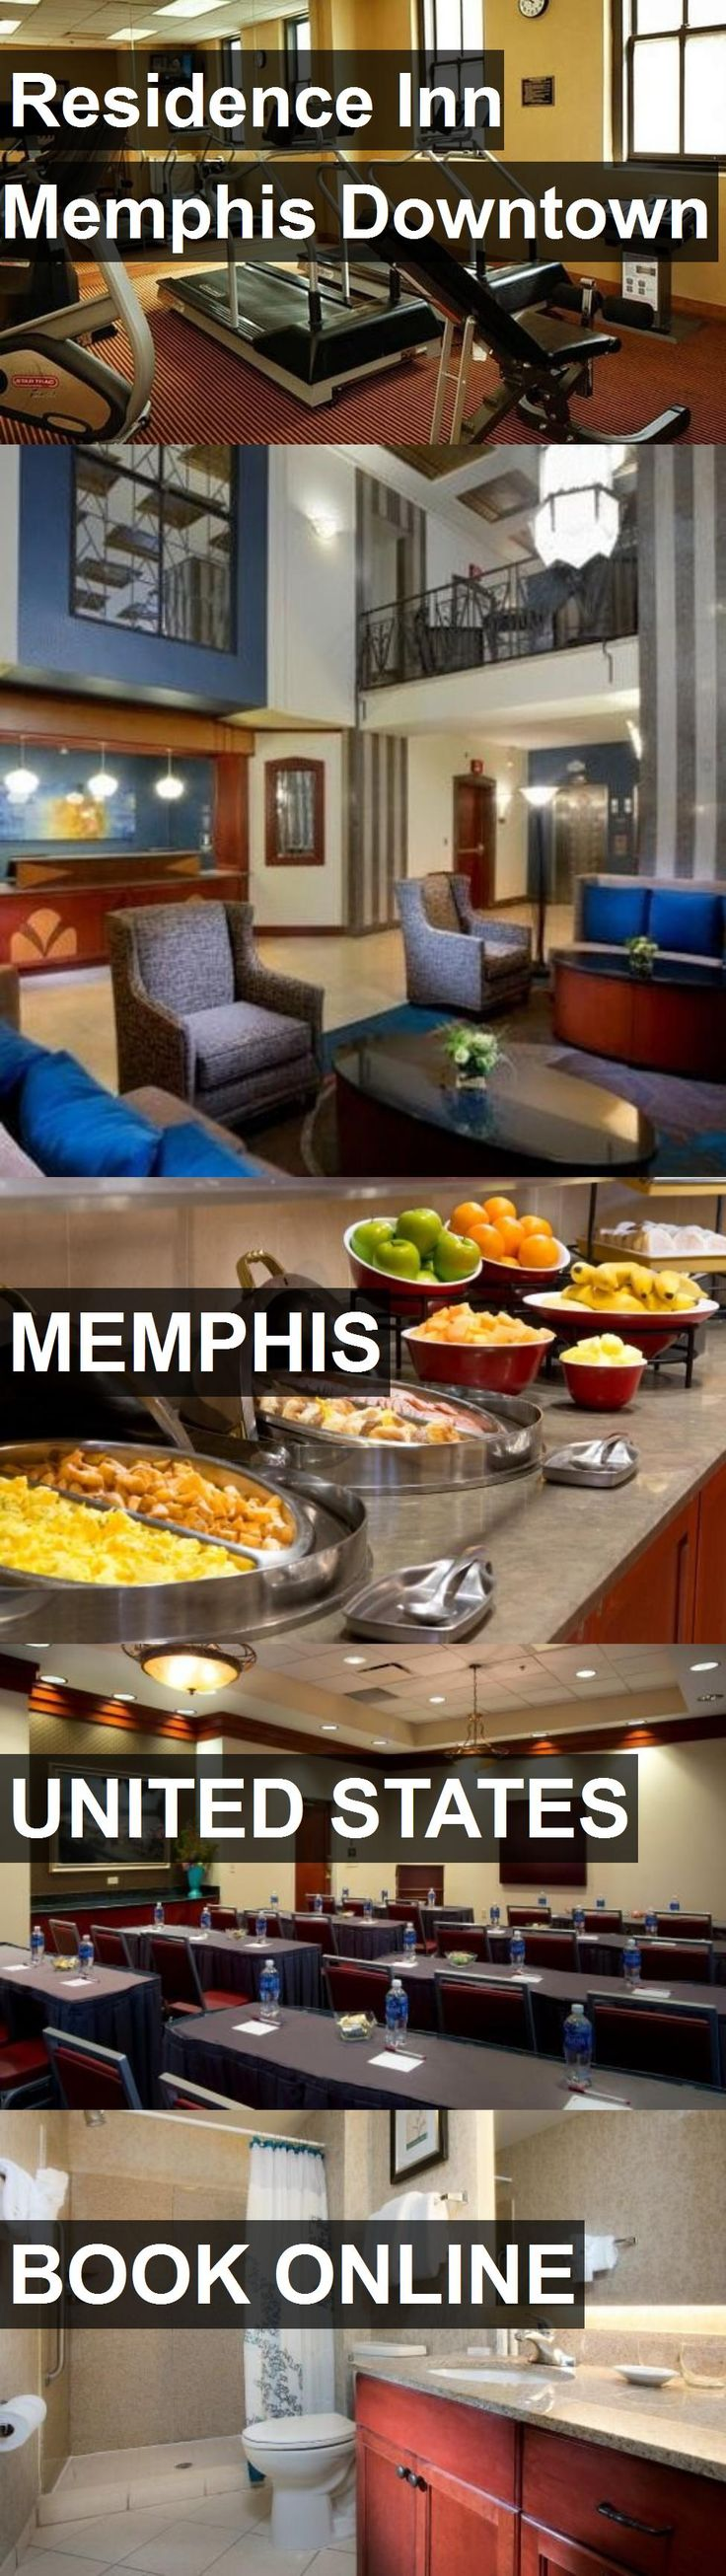 1 bedroom apartments midtown memphis tn%0A Hotel Residence Inn Memphis Downtown in Memphis  United States  For more  information  photos